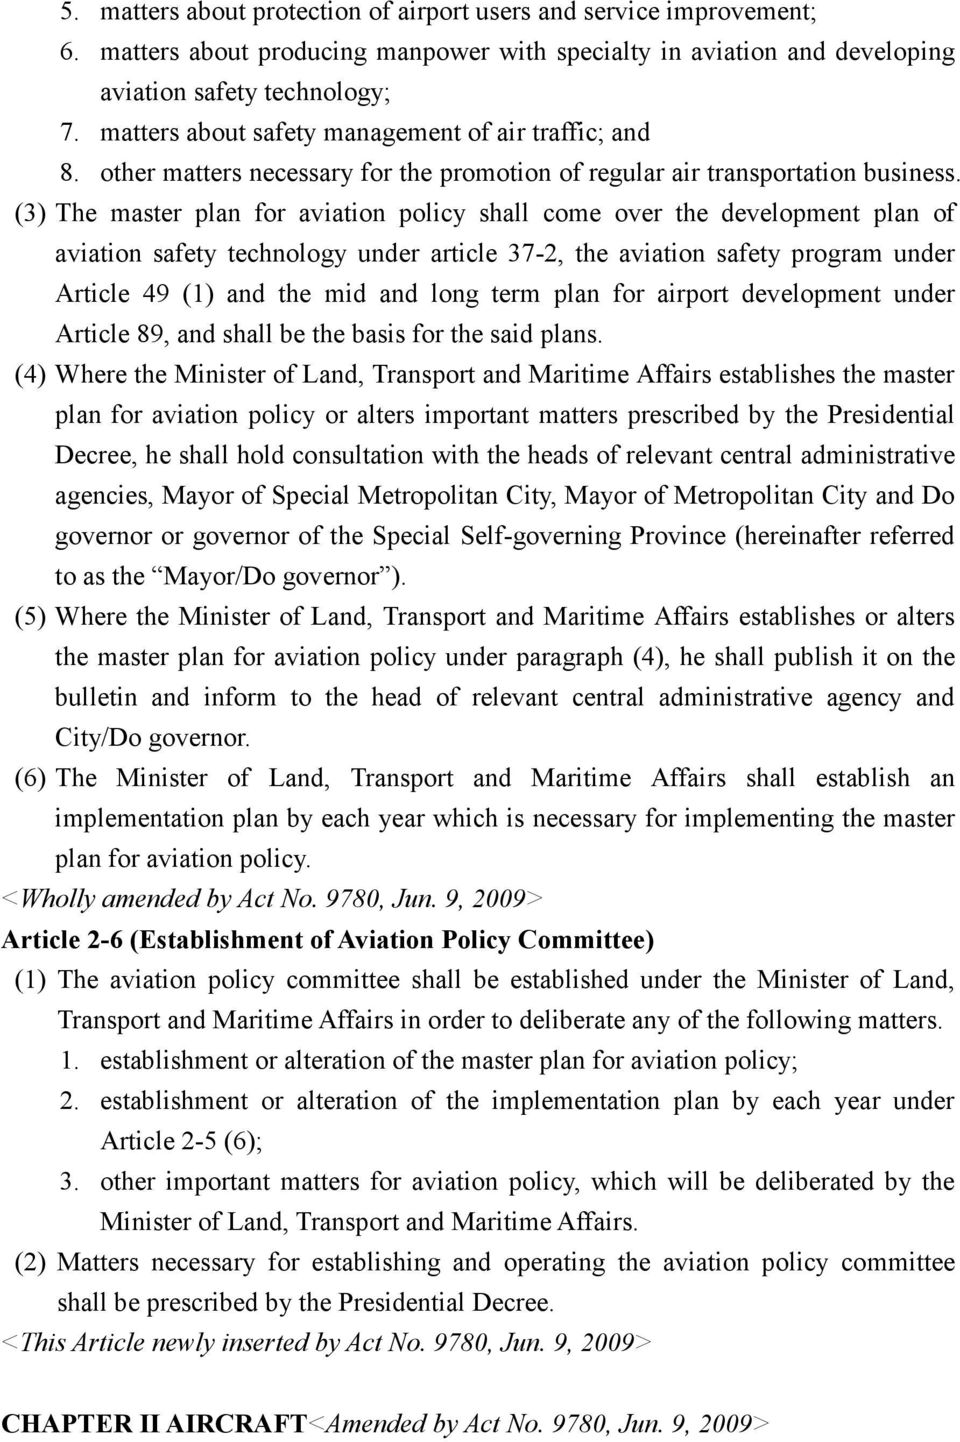 (3) The master plan for aviation policy shall come over the development plan of aviation safety technology under article 37-2, the aviation safety program under Article 49 (1) and the mid and long